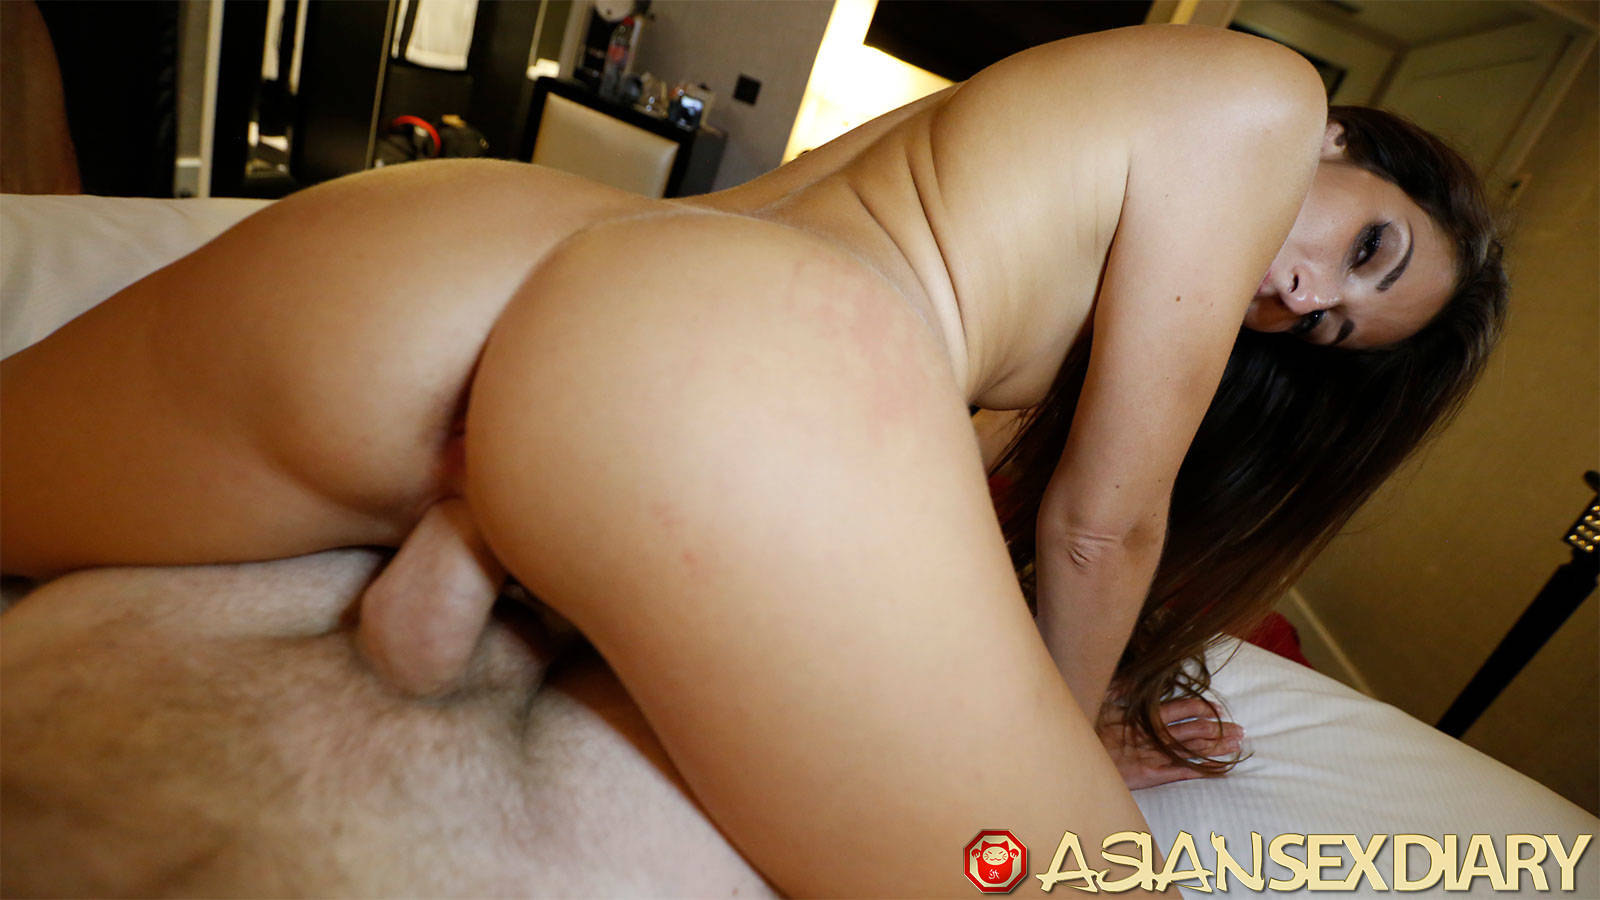 Asian femdom pictures